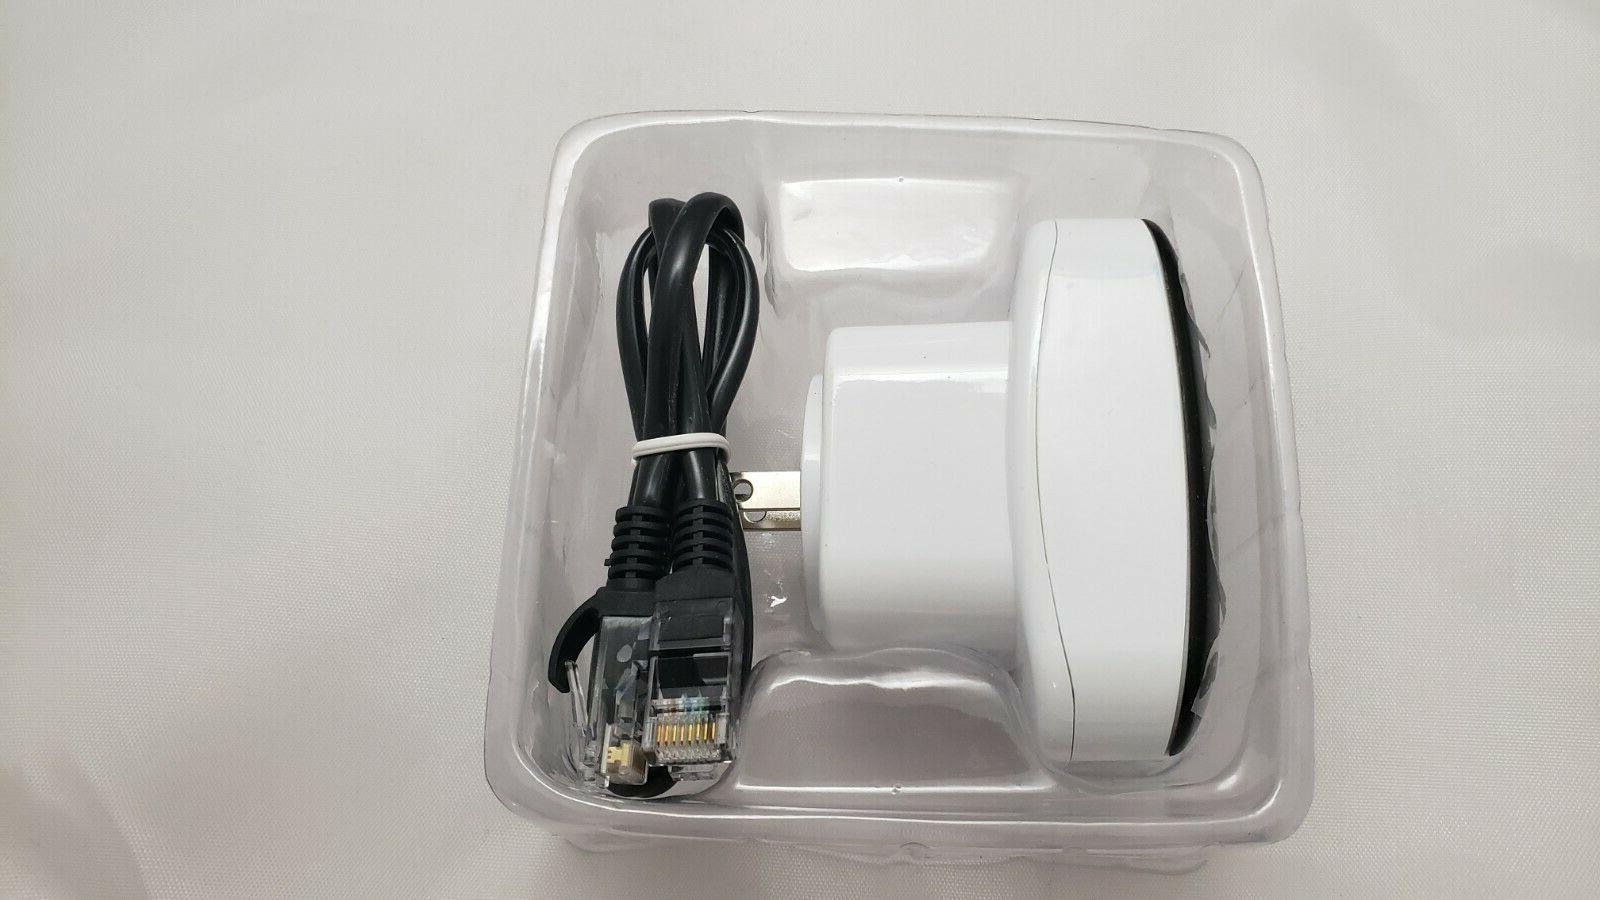 New WIFI Repeater Extender Booster